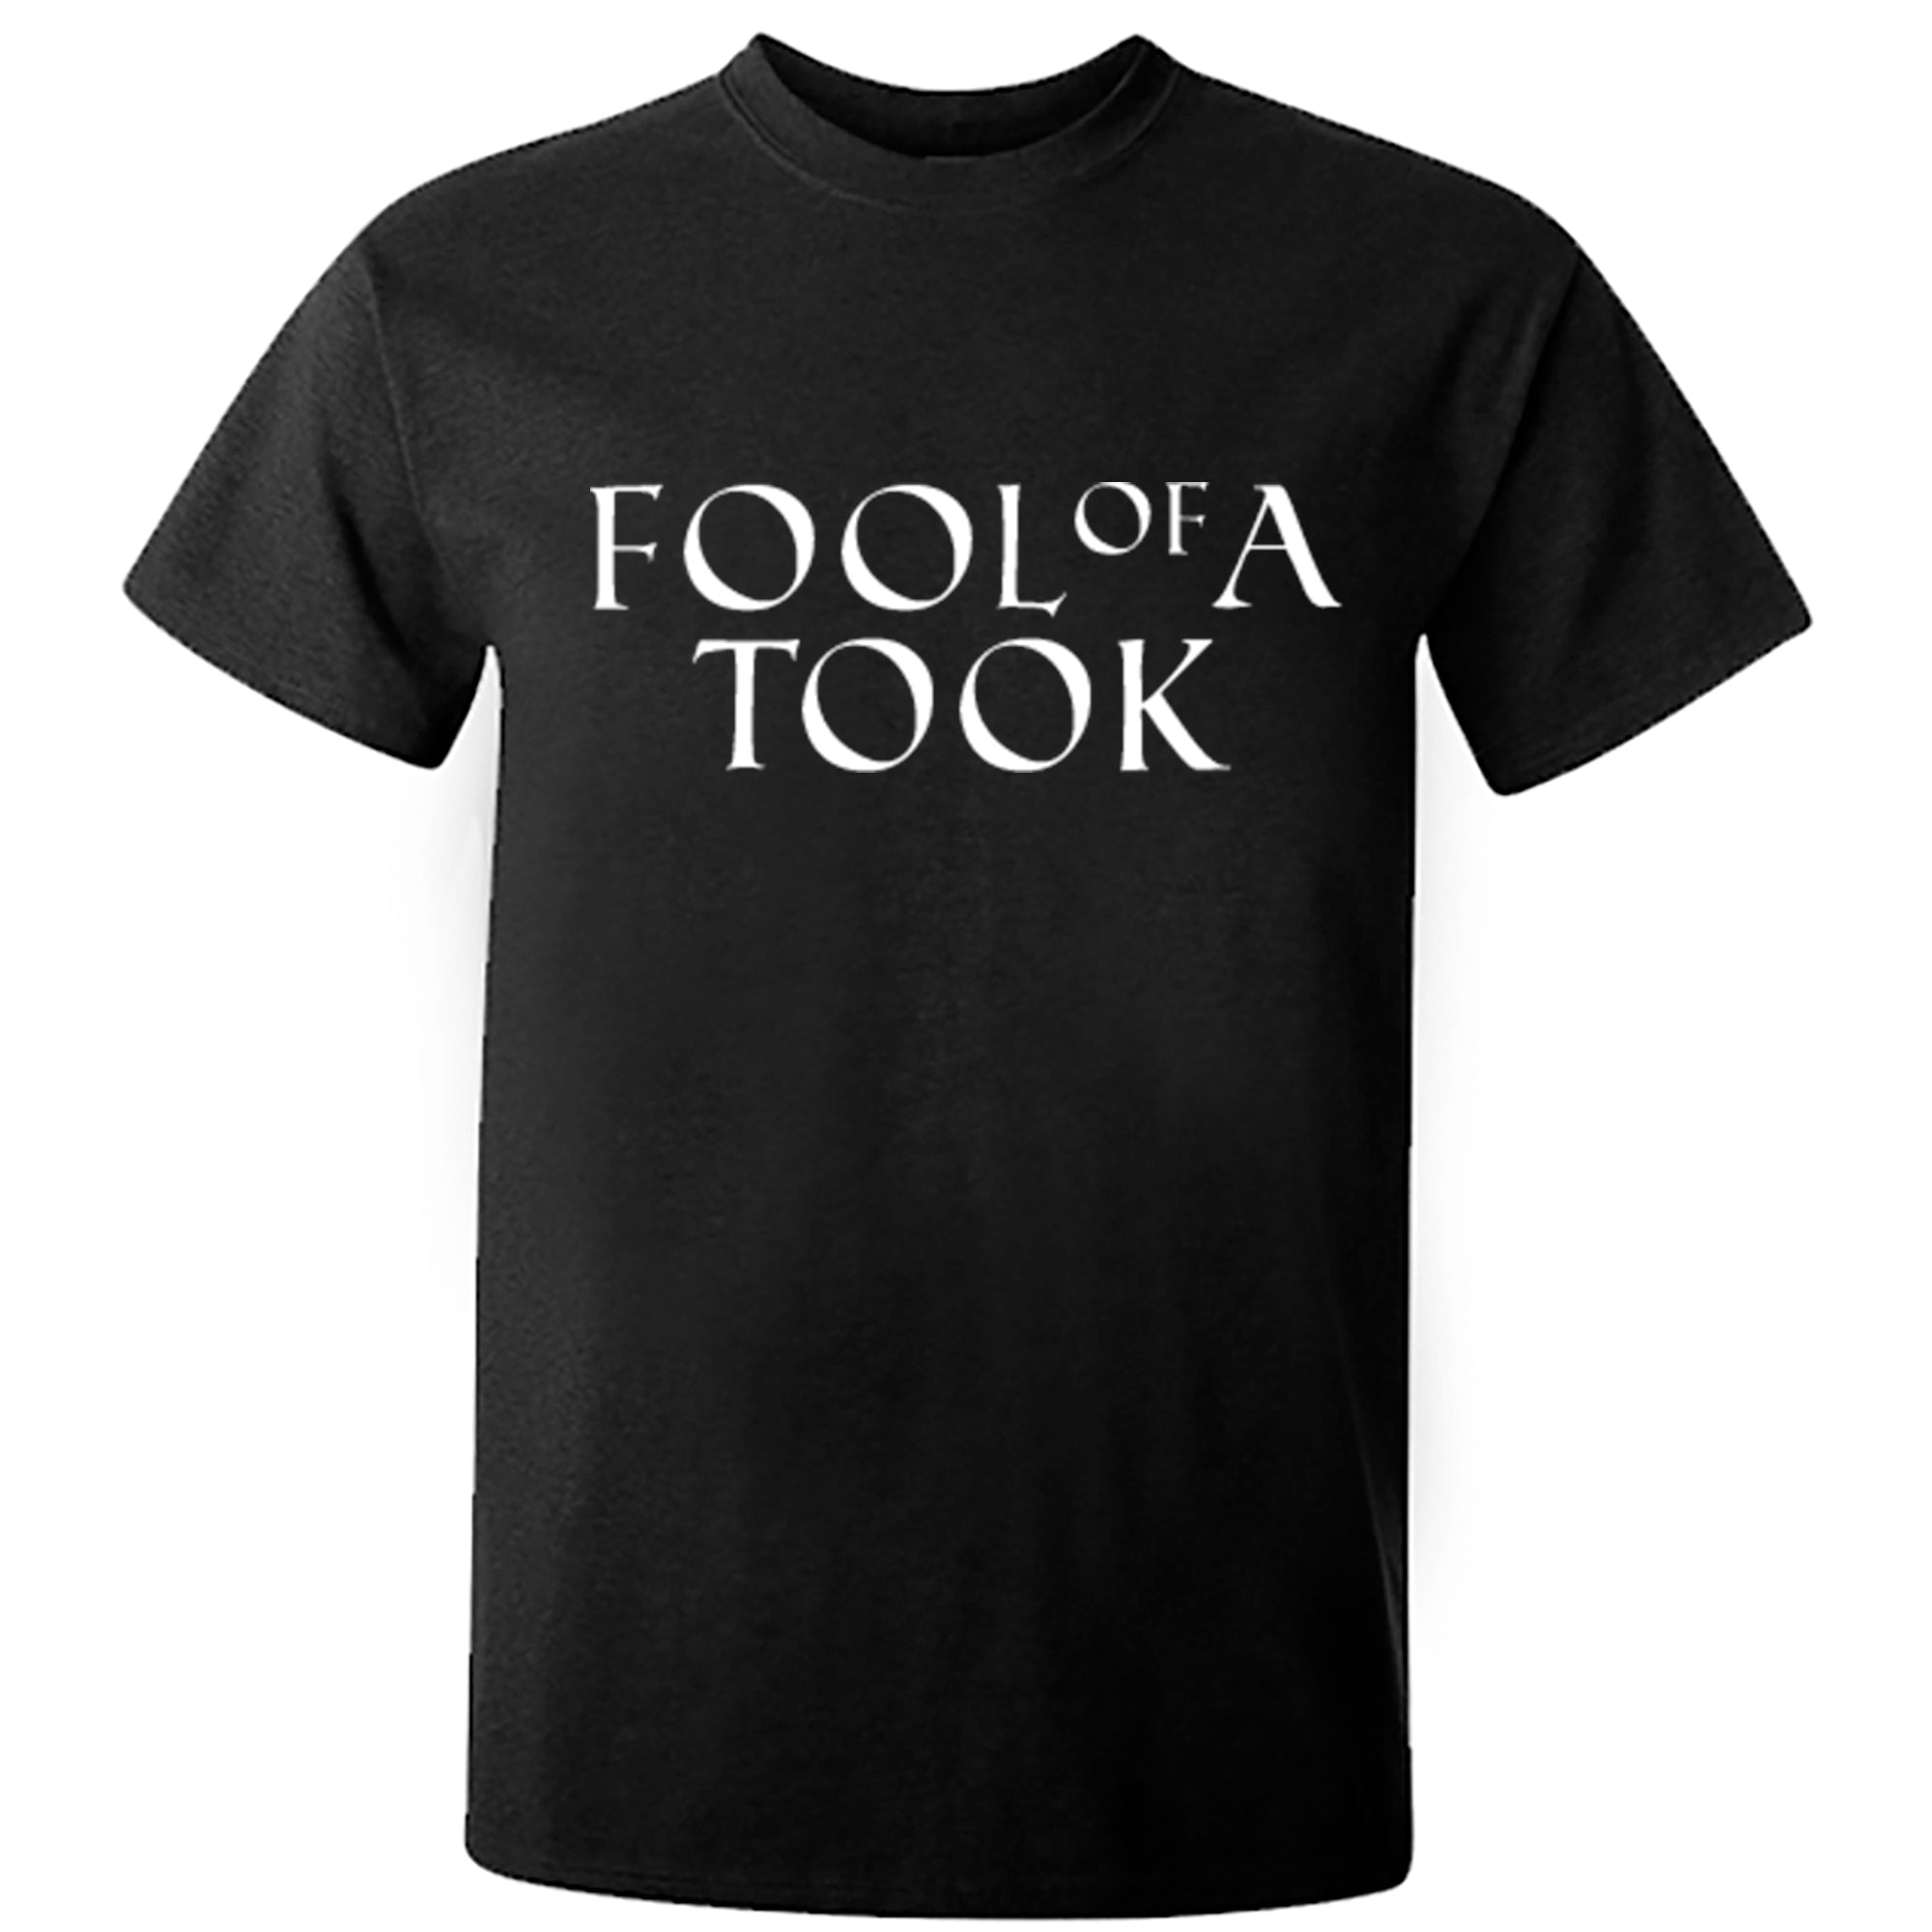 Fool Of A Took Unisex Fit T-Shirt S0287 - Illustrated Identity Ltd.